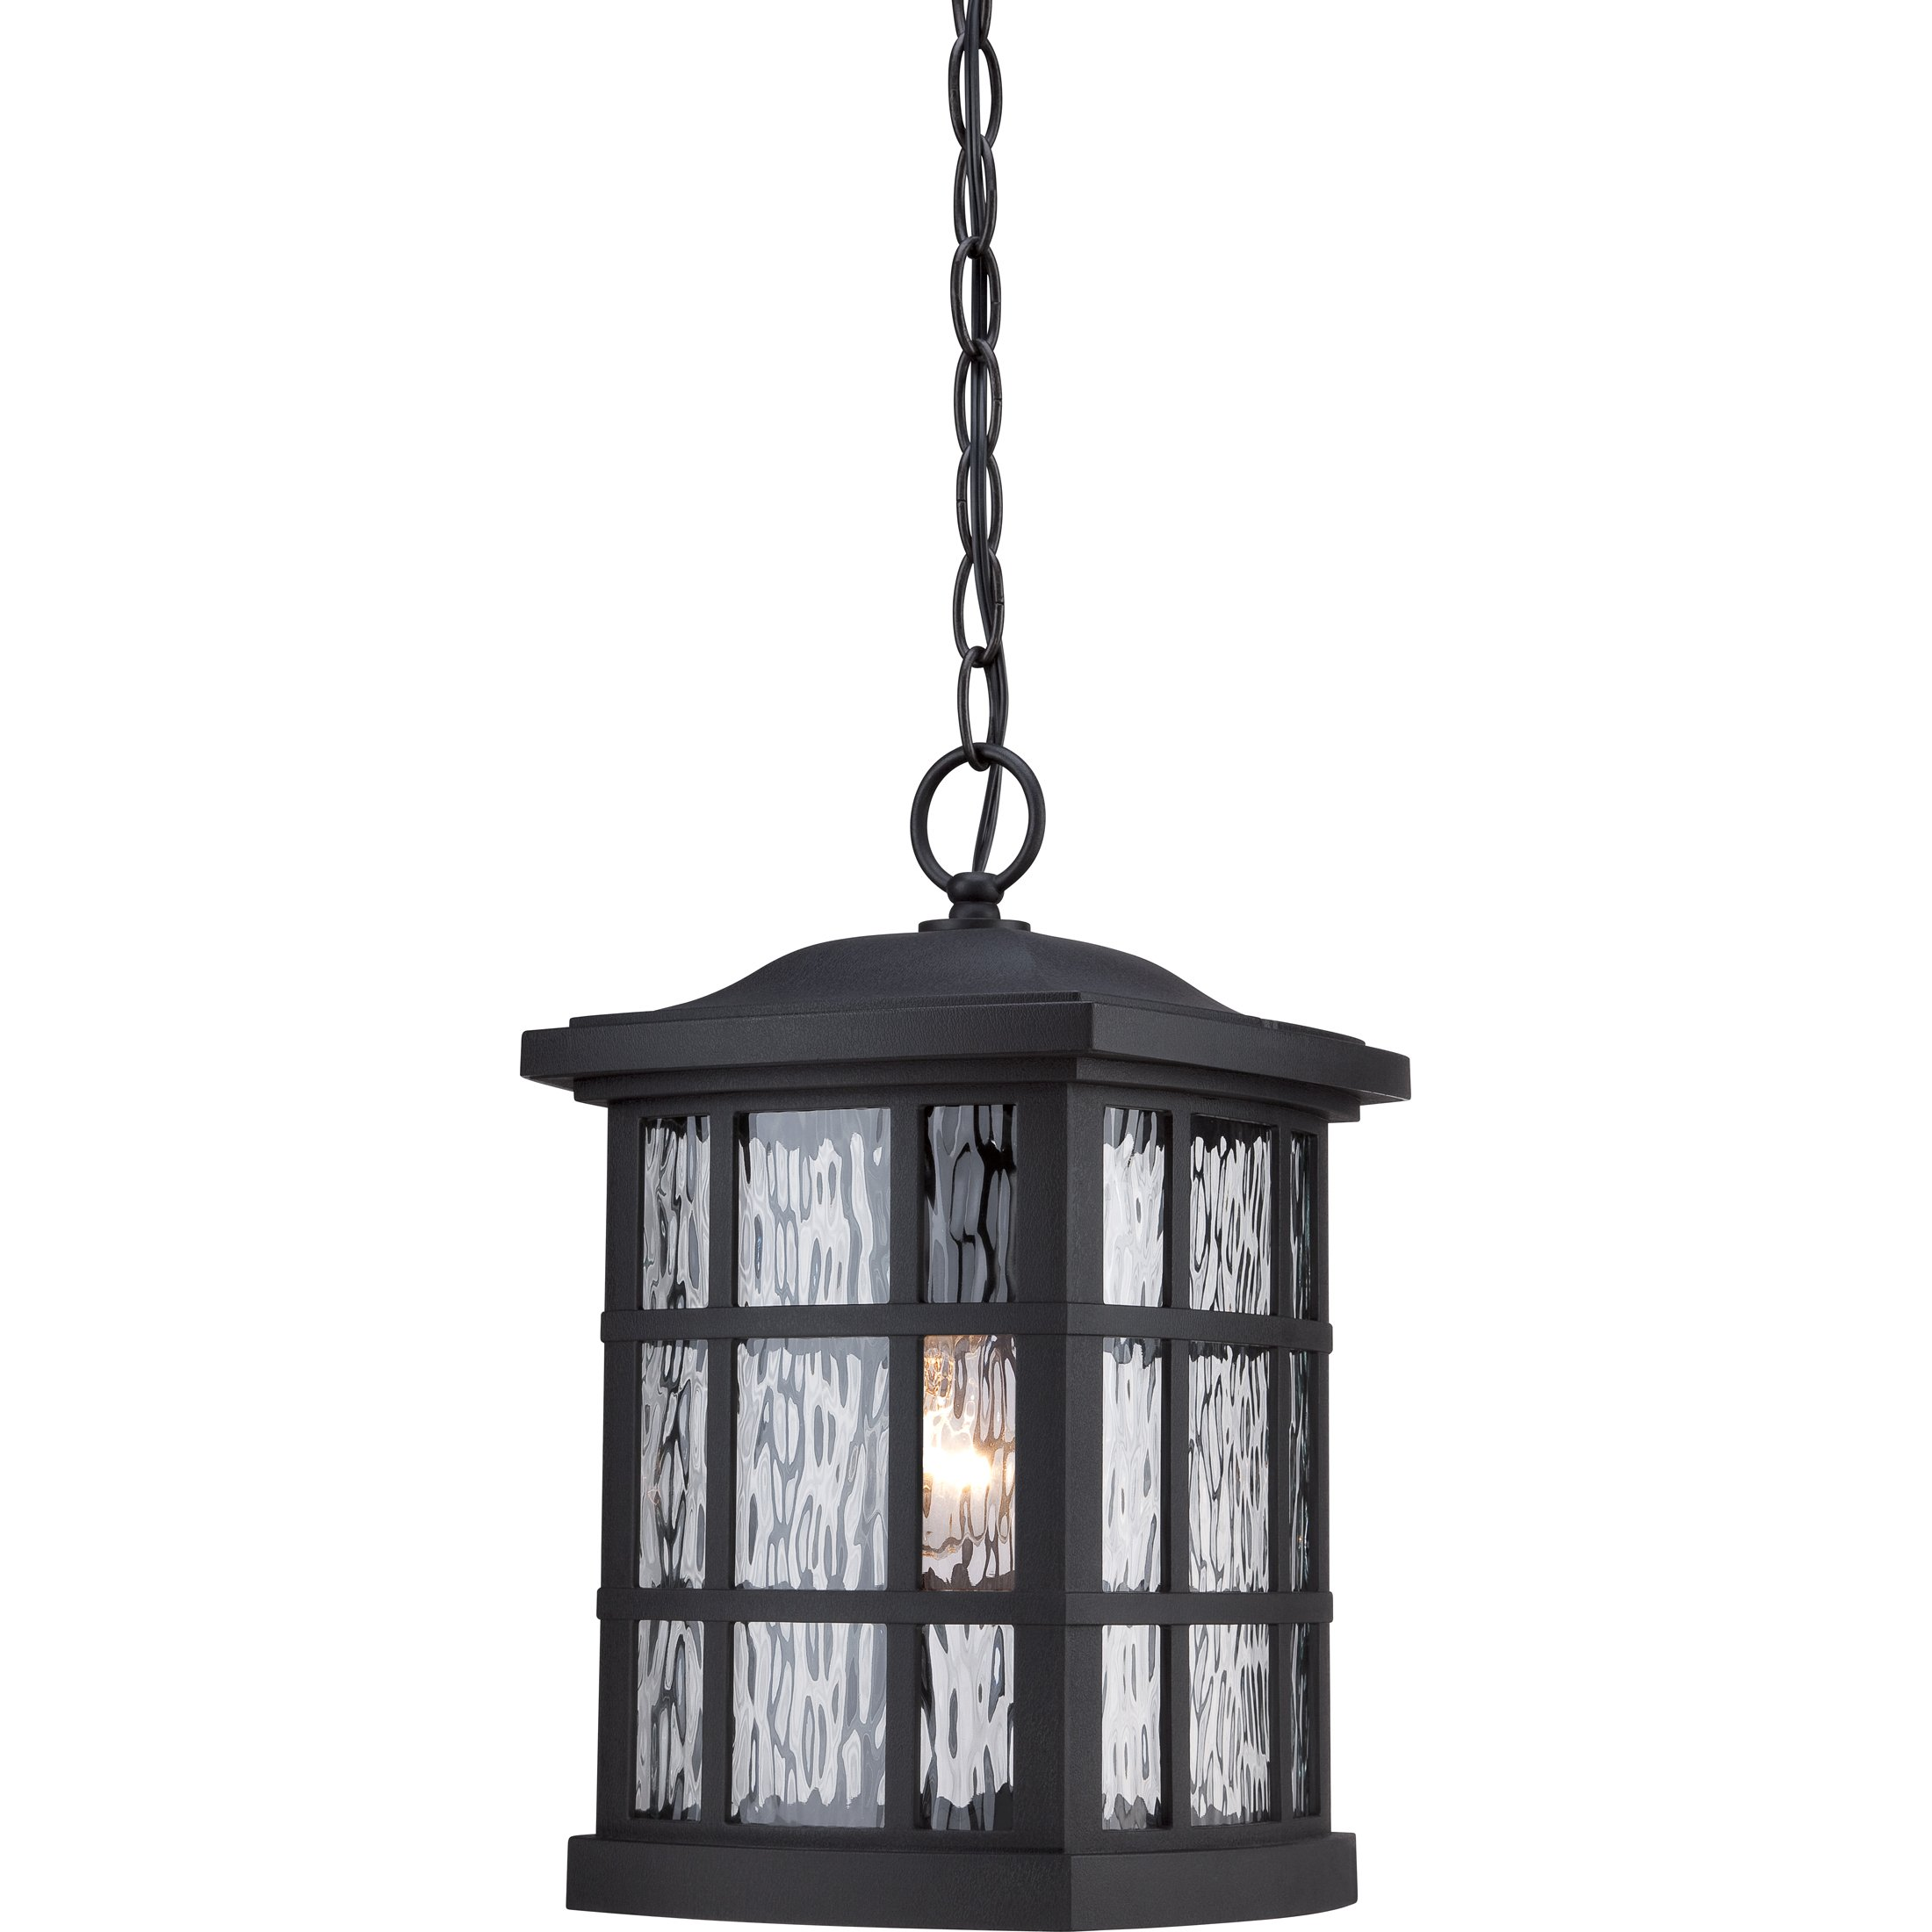 Quoizel SNN1909K One Light Outdoor Hanging Lantern by Quoizel